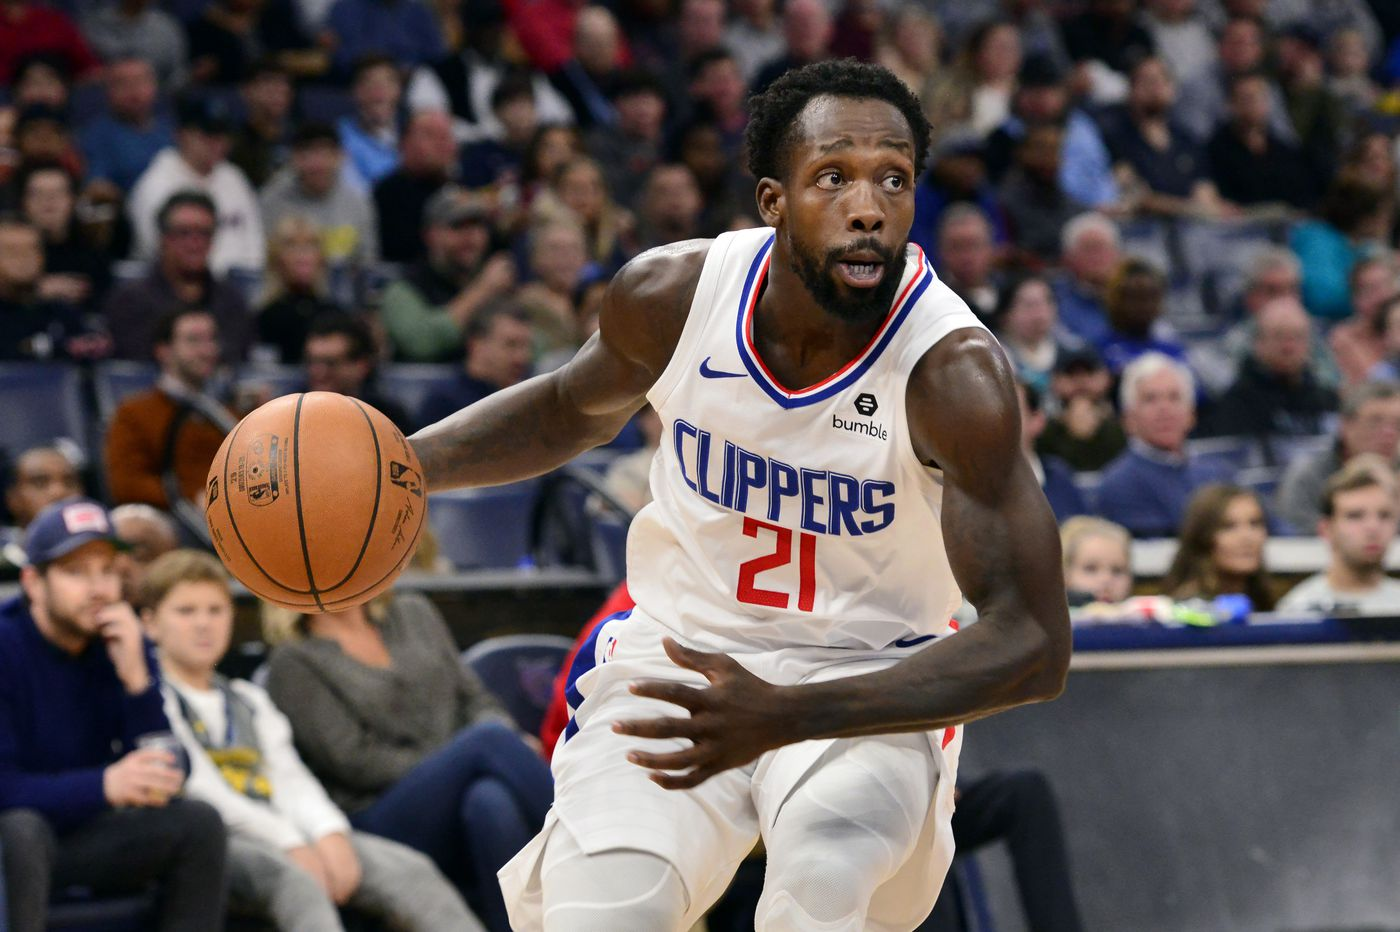 Patrick Beverley's uneasy exchange with NBPA's Michele Roberts, former Arizona players remember Lute Olson, more sports news